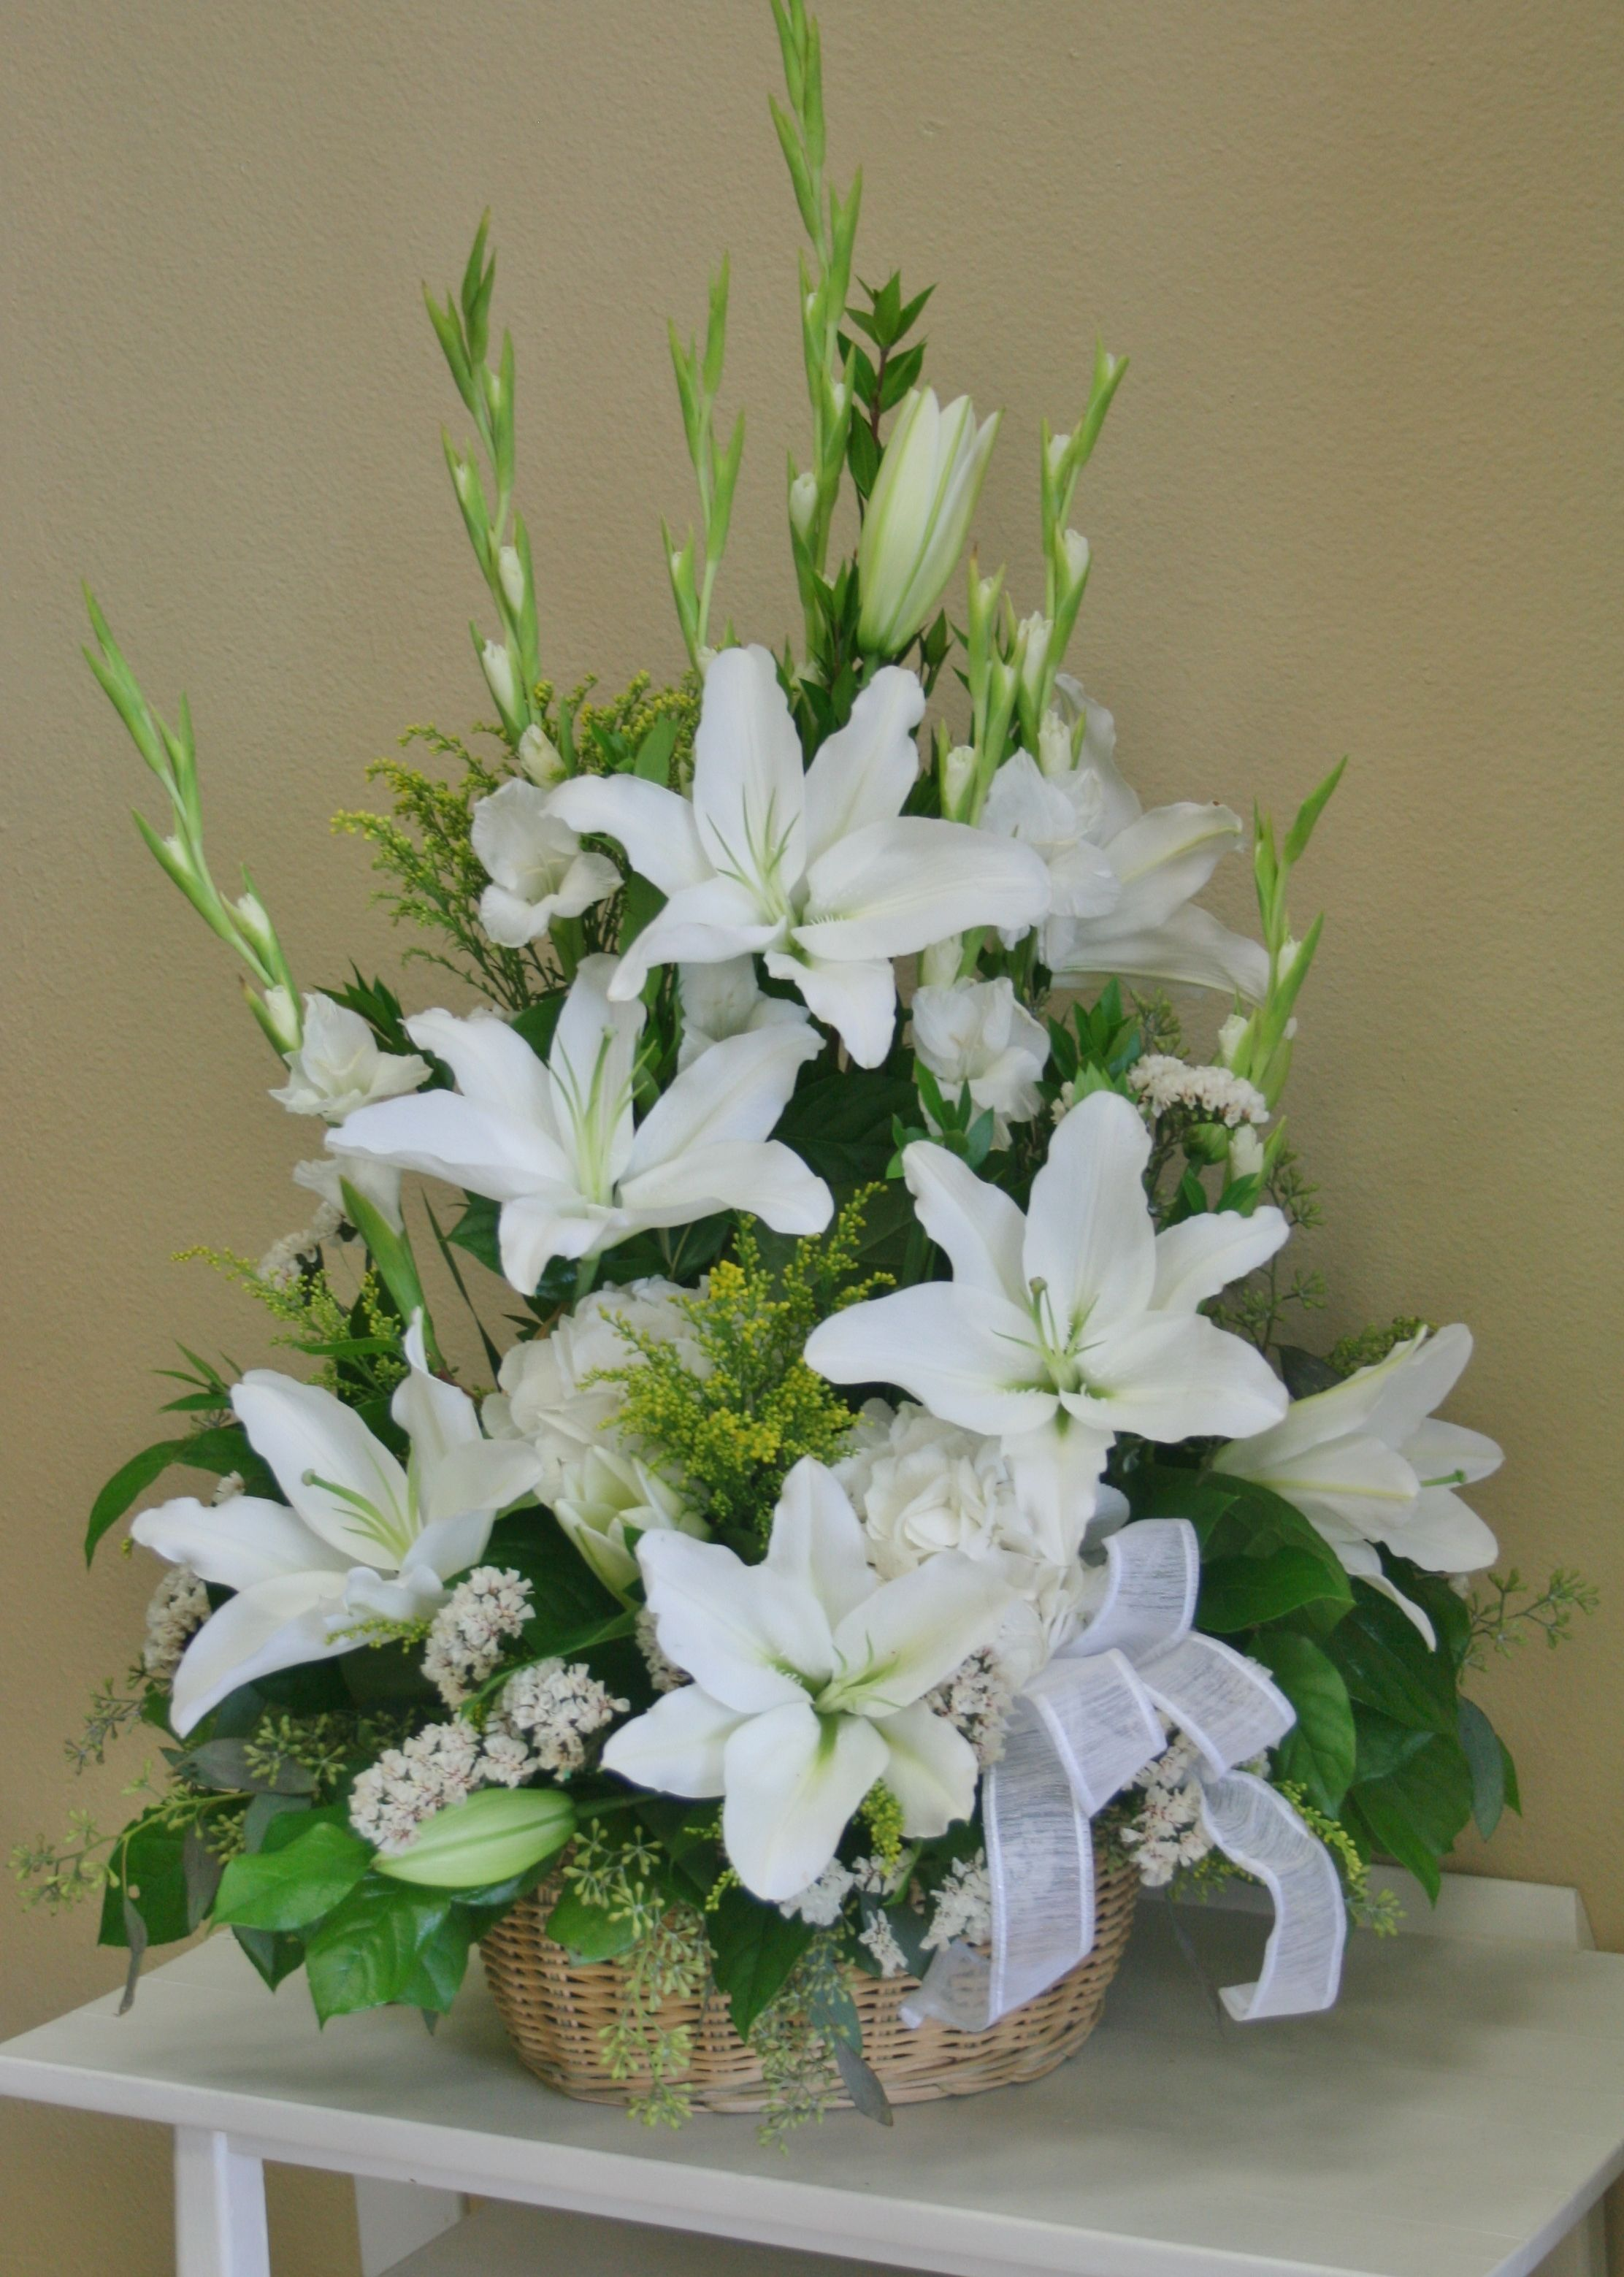 An all white flower arrangement including white lilies made by your an all white flower arrangement including white lilies made by your local riverside florist willow izmirmasajfo